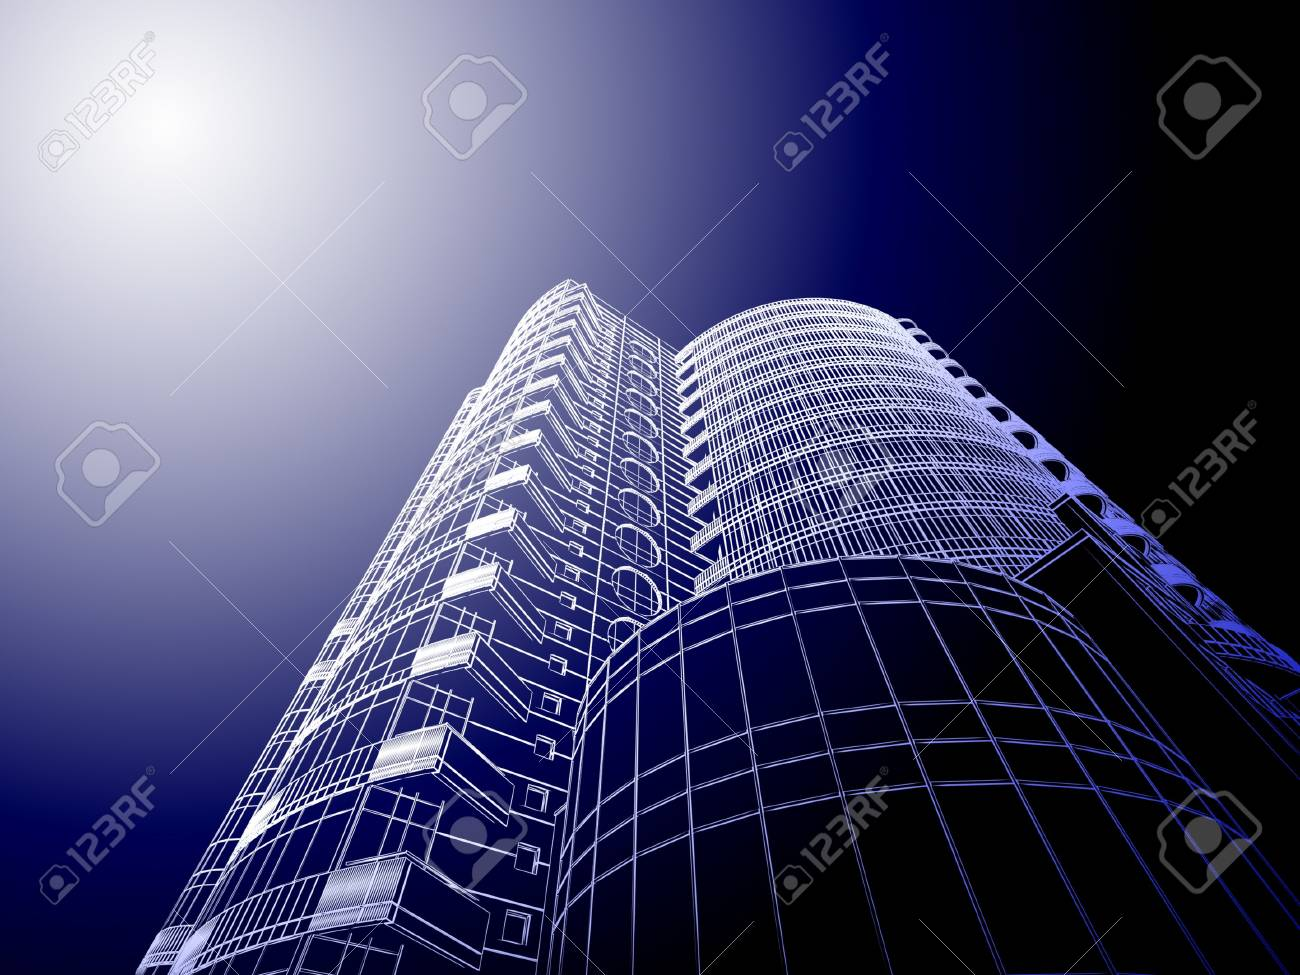 Abstract architecture Stock Photo - 11326043